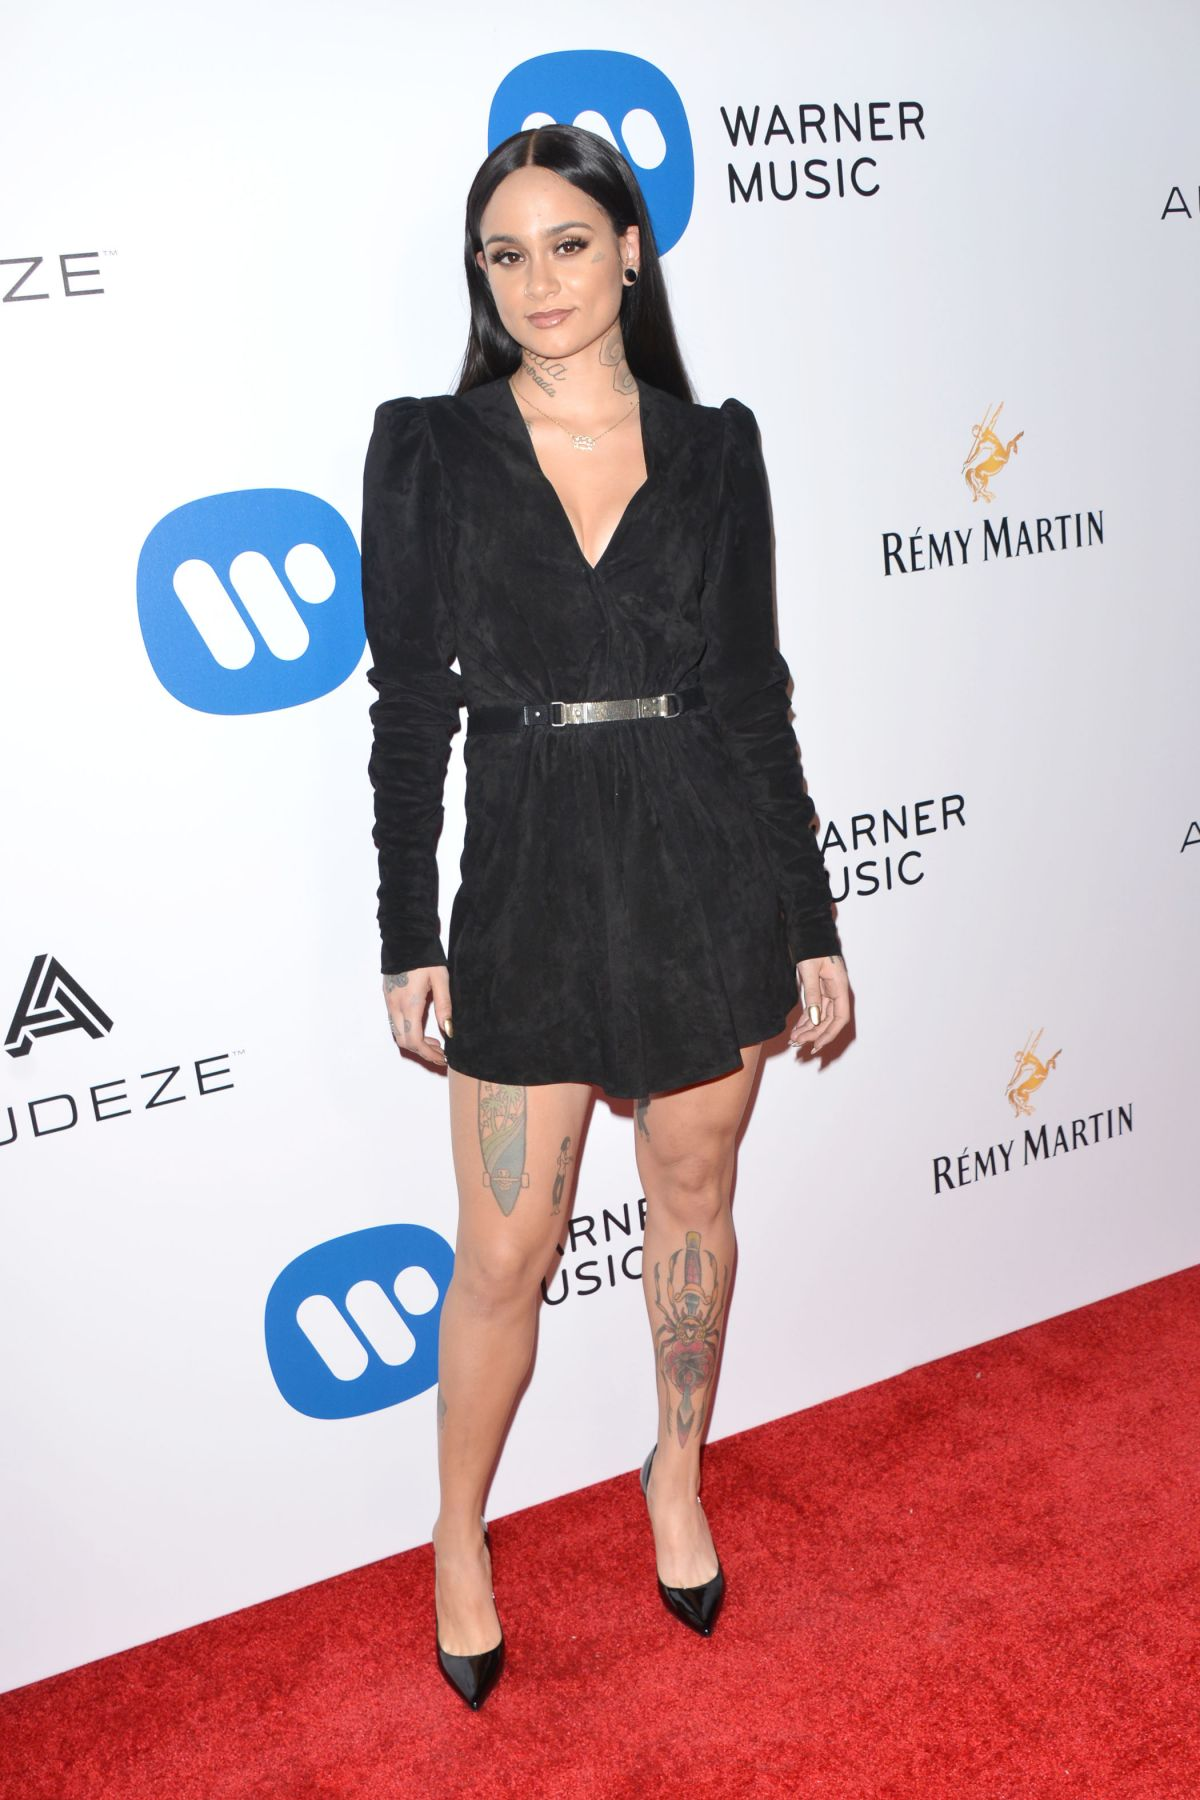 KEHLANI at Warner Music Group Grammy After Party in Los Angeles 02/12/2017